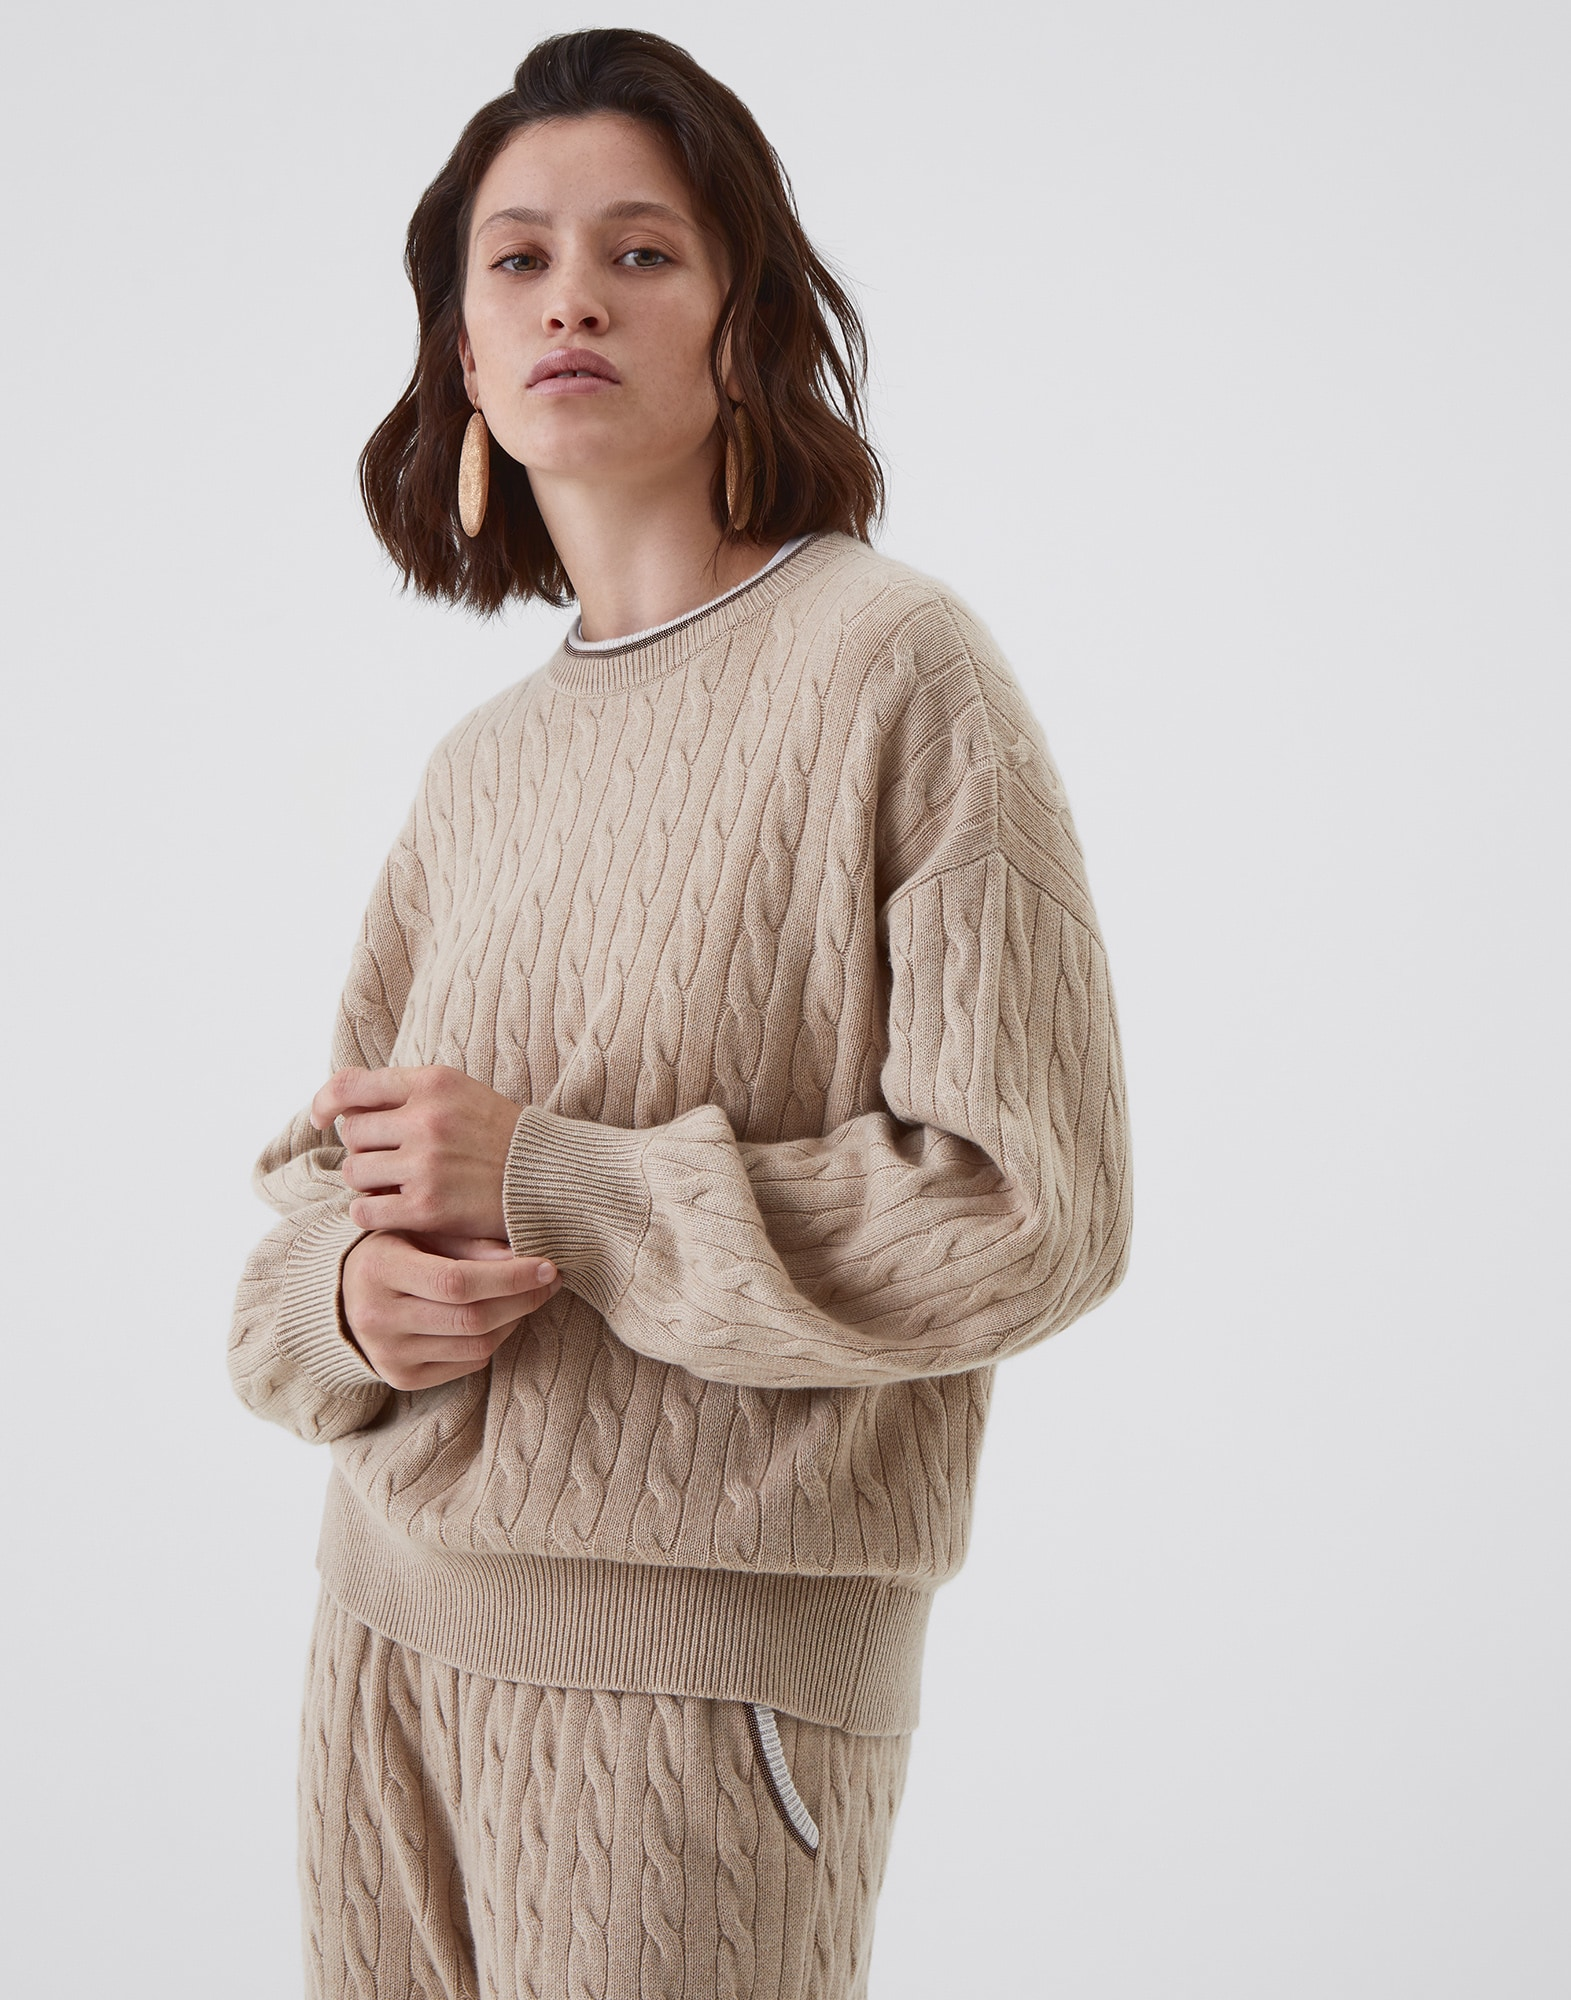 Sweatshirt Biscuit Woman 1 - Brunello Cucinelli